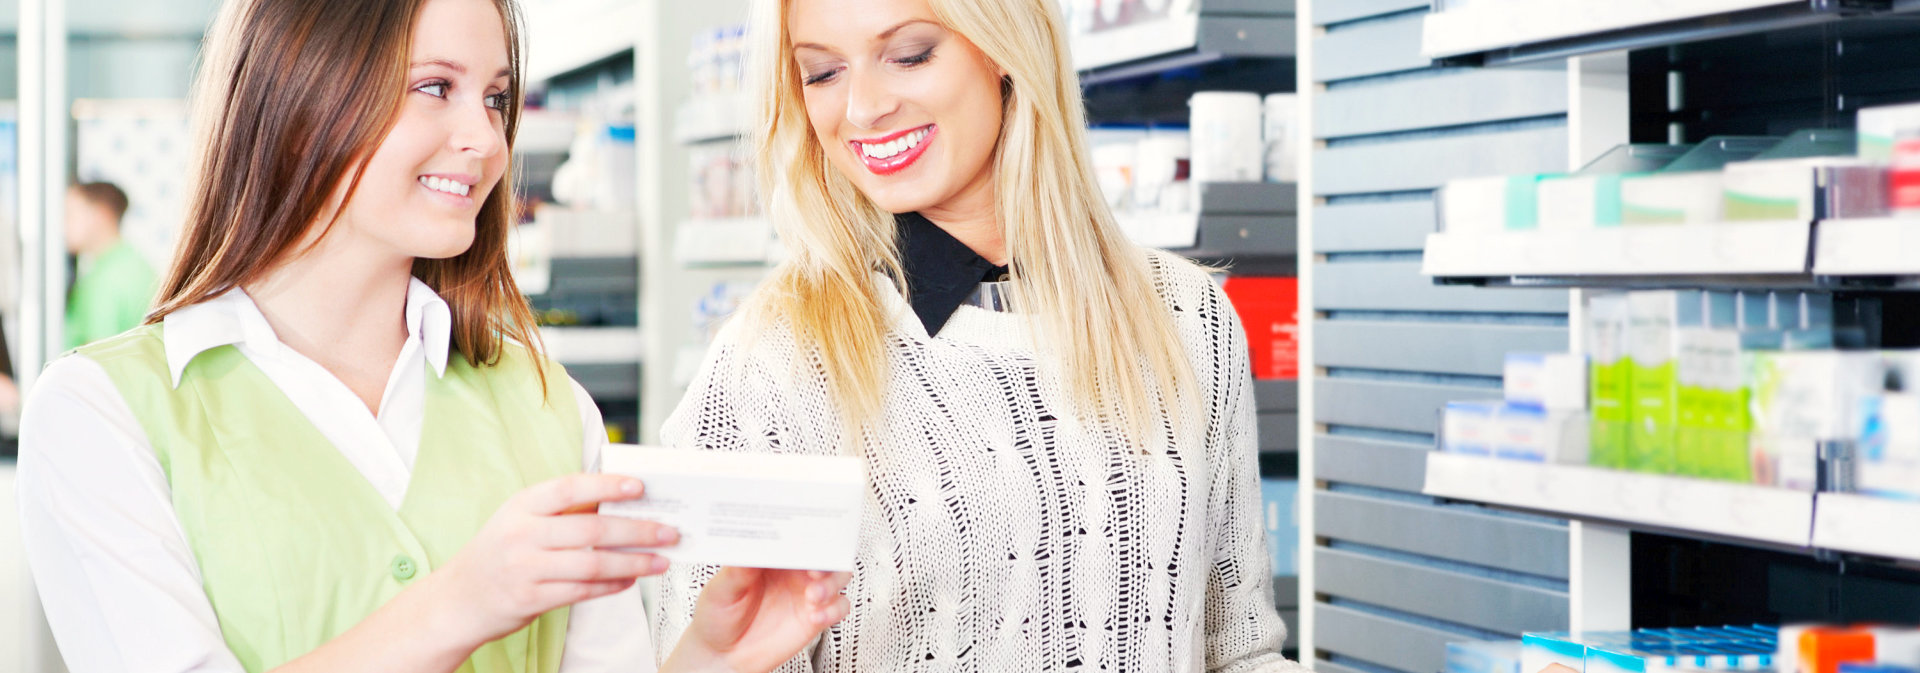 pharmacist guiding the customer